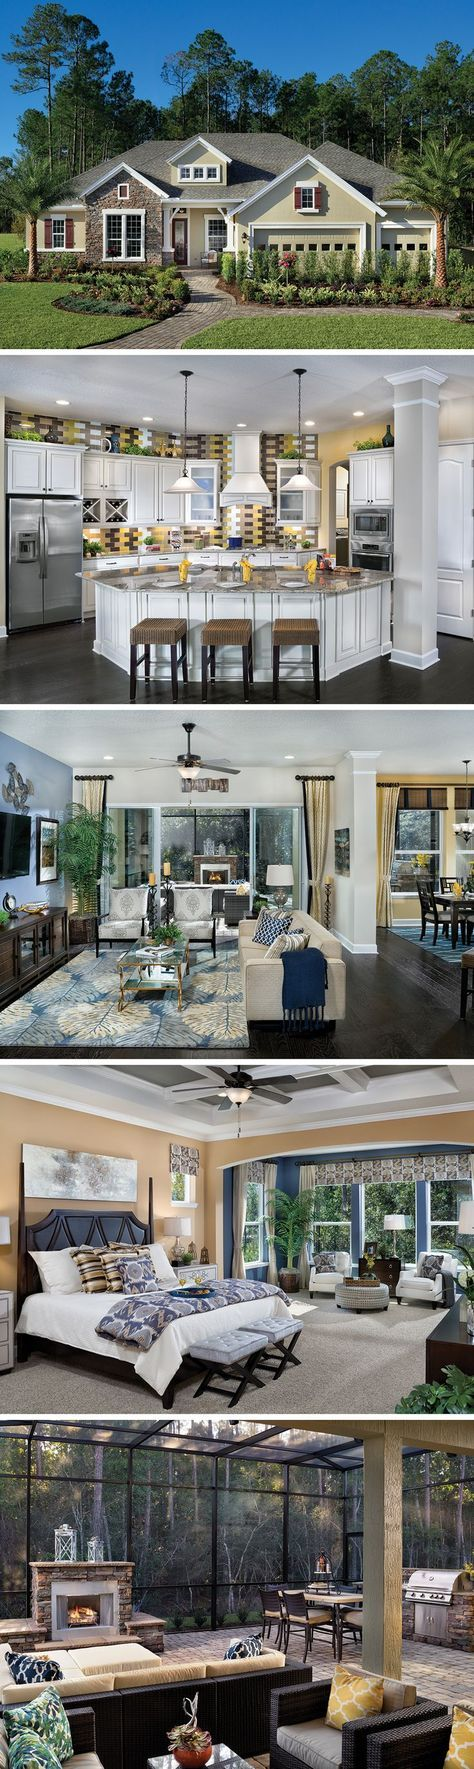 best dream home ideas images on pinterest house beautiful